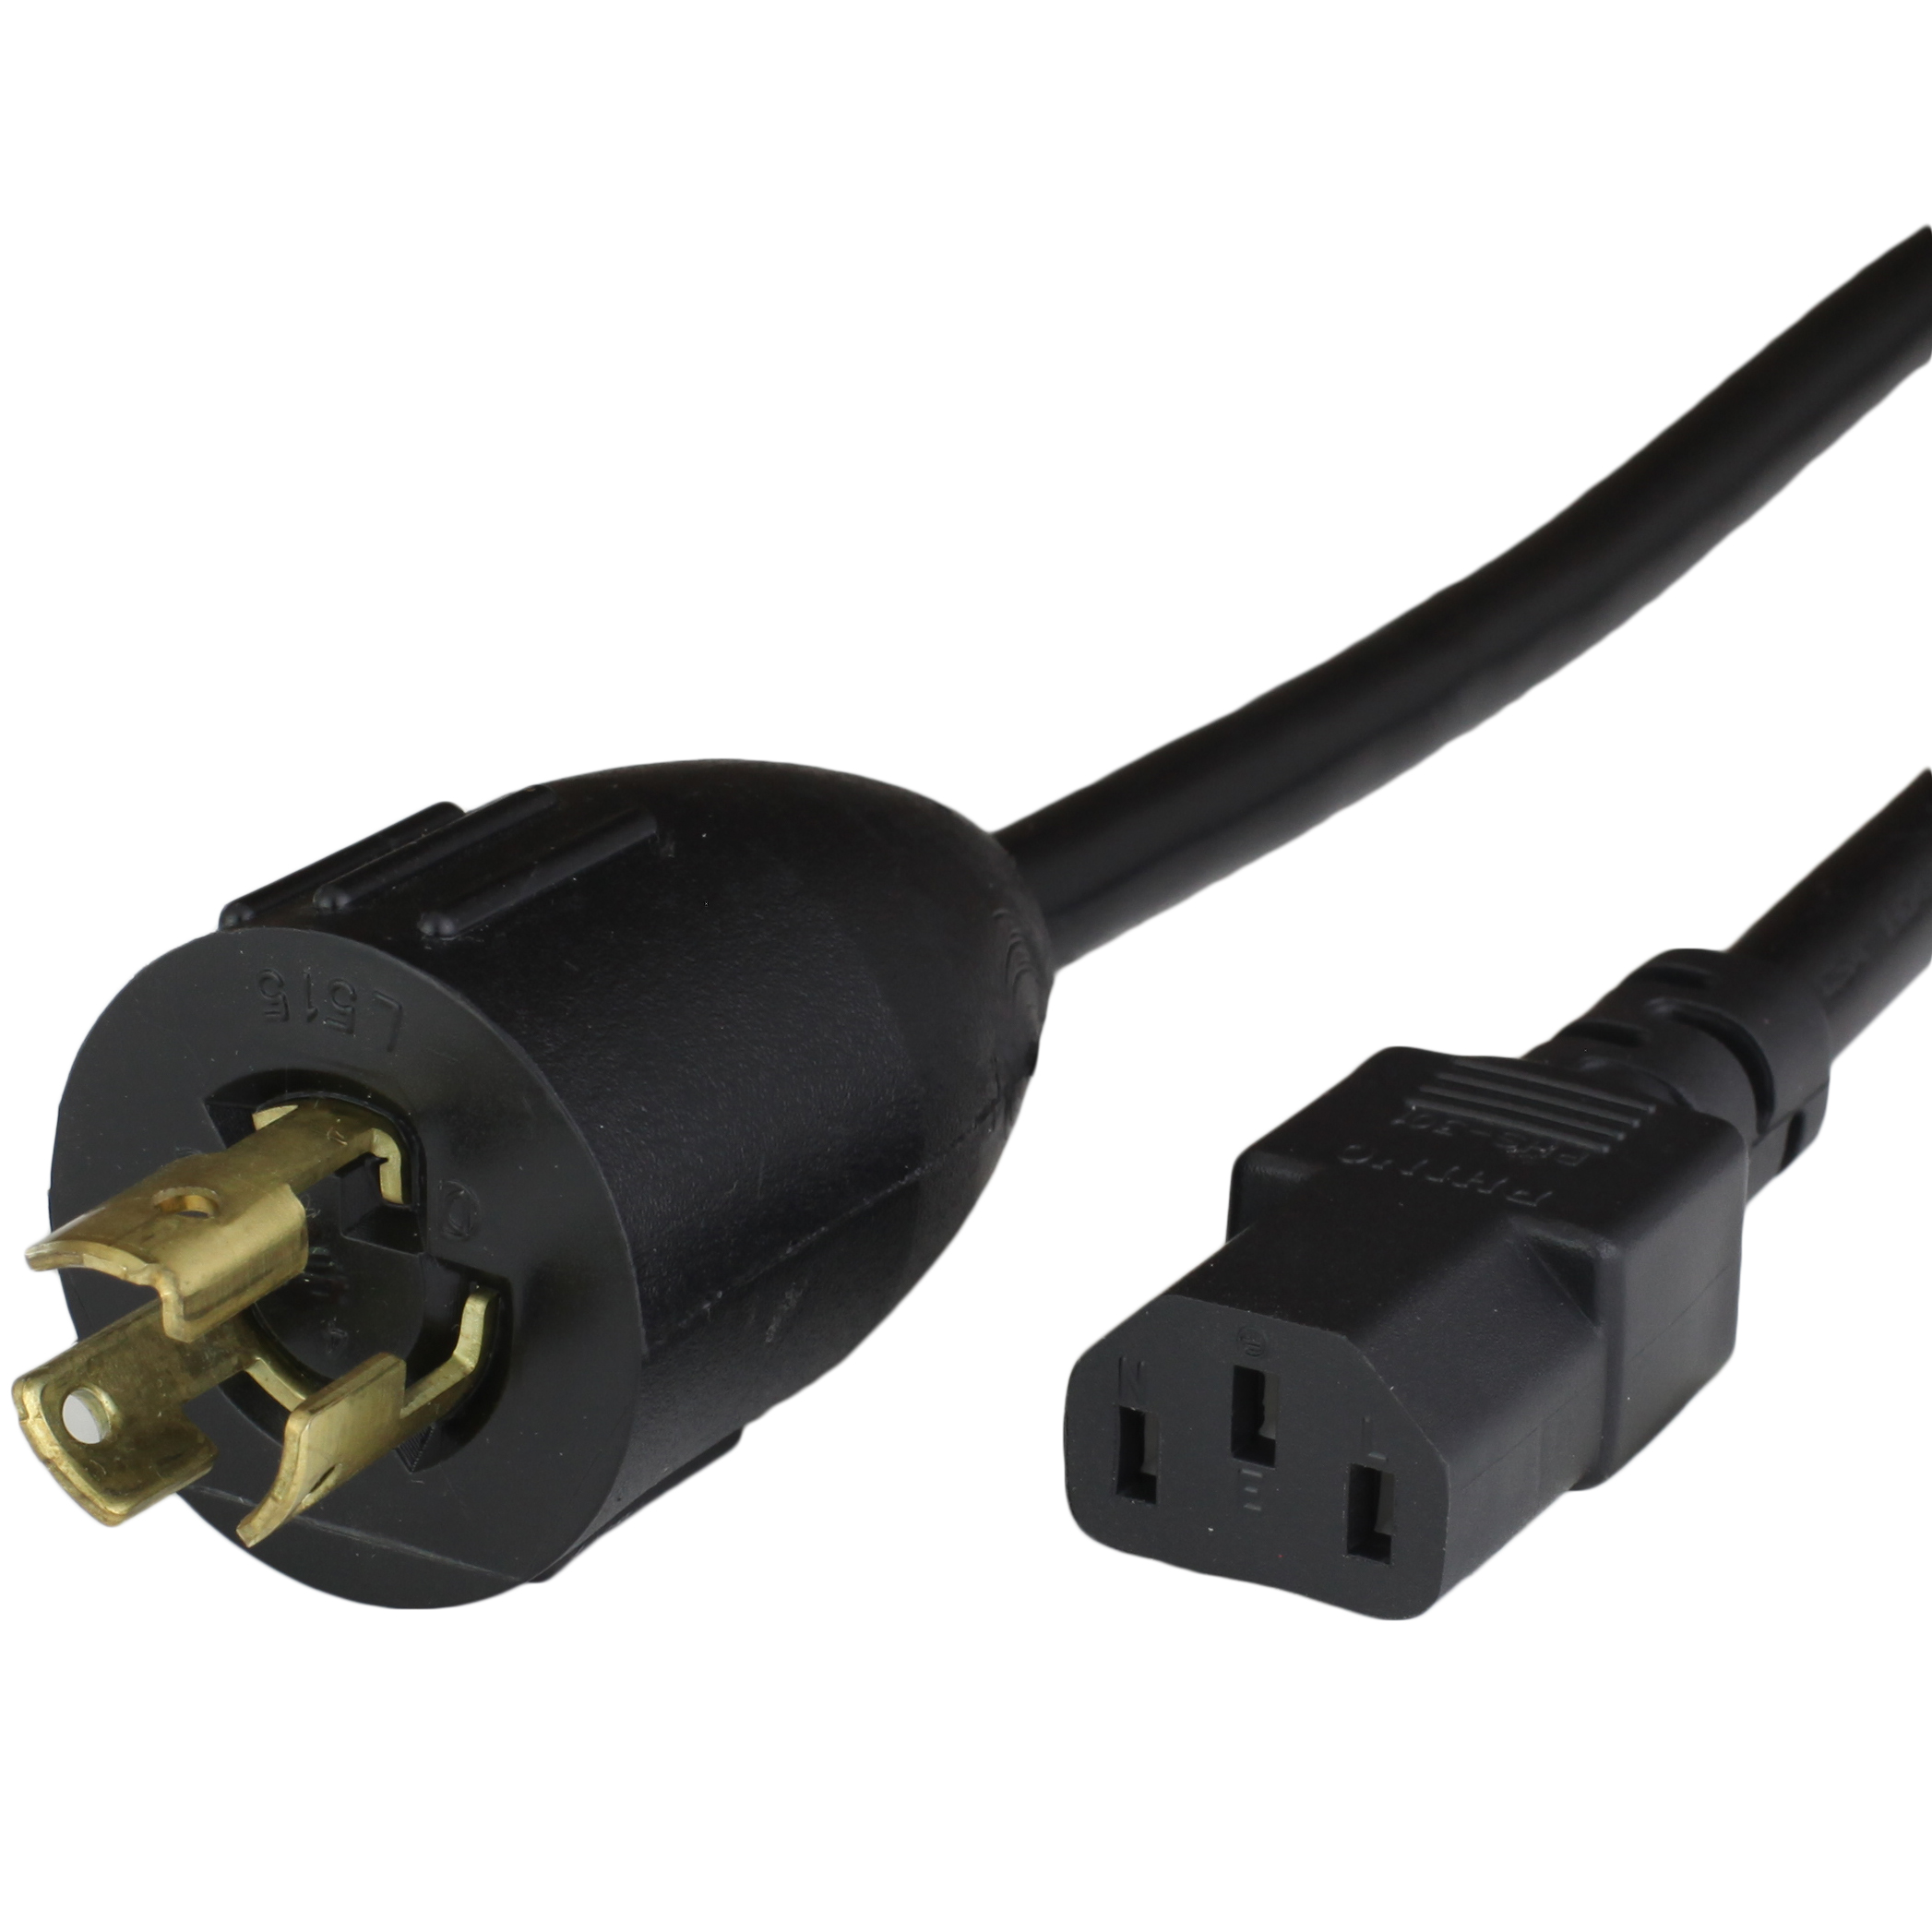 NEMA L5-15P to IEC60320 C13 Power Cords